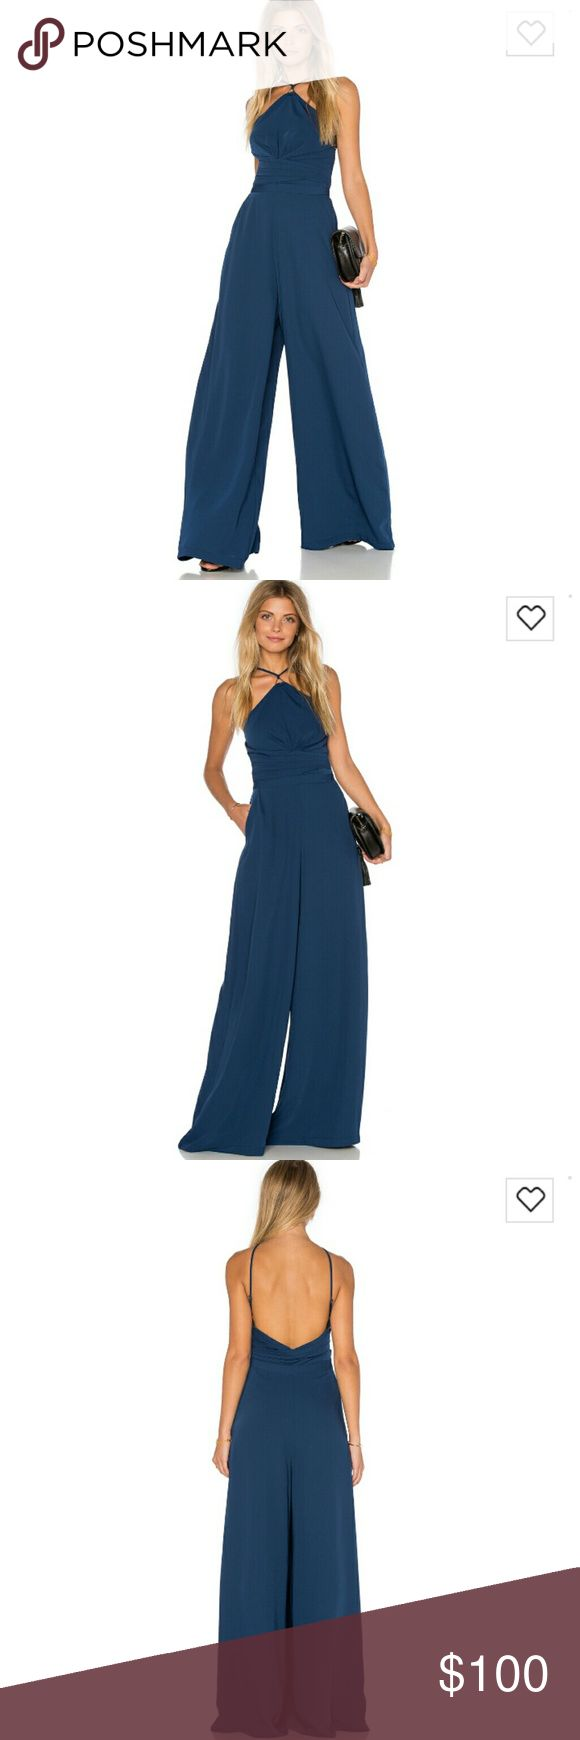 STYLESTALKER Kenya Jumpsuit Gown This jumpsuit is stunning in nightfall blue! It's can be dressed down or  up to wear at a black tie event! It has a side zipper.   Brand new with tags. Size small is sold out everywhere! Stylestalker Dresses